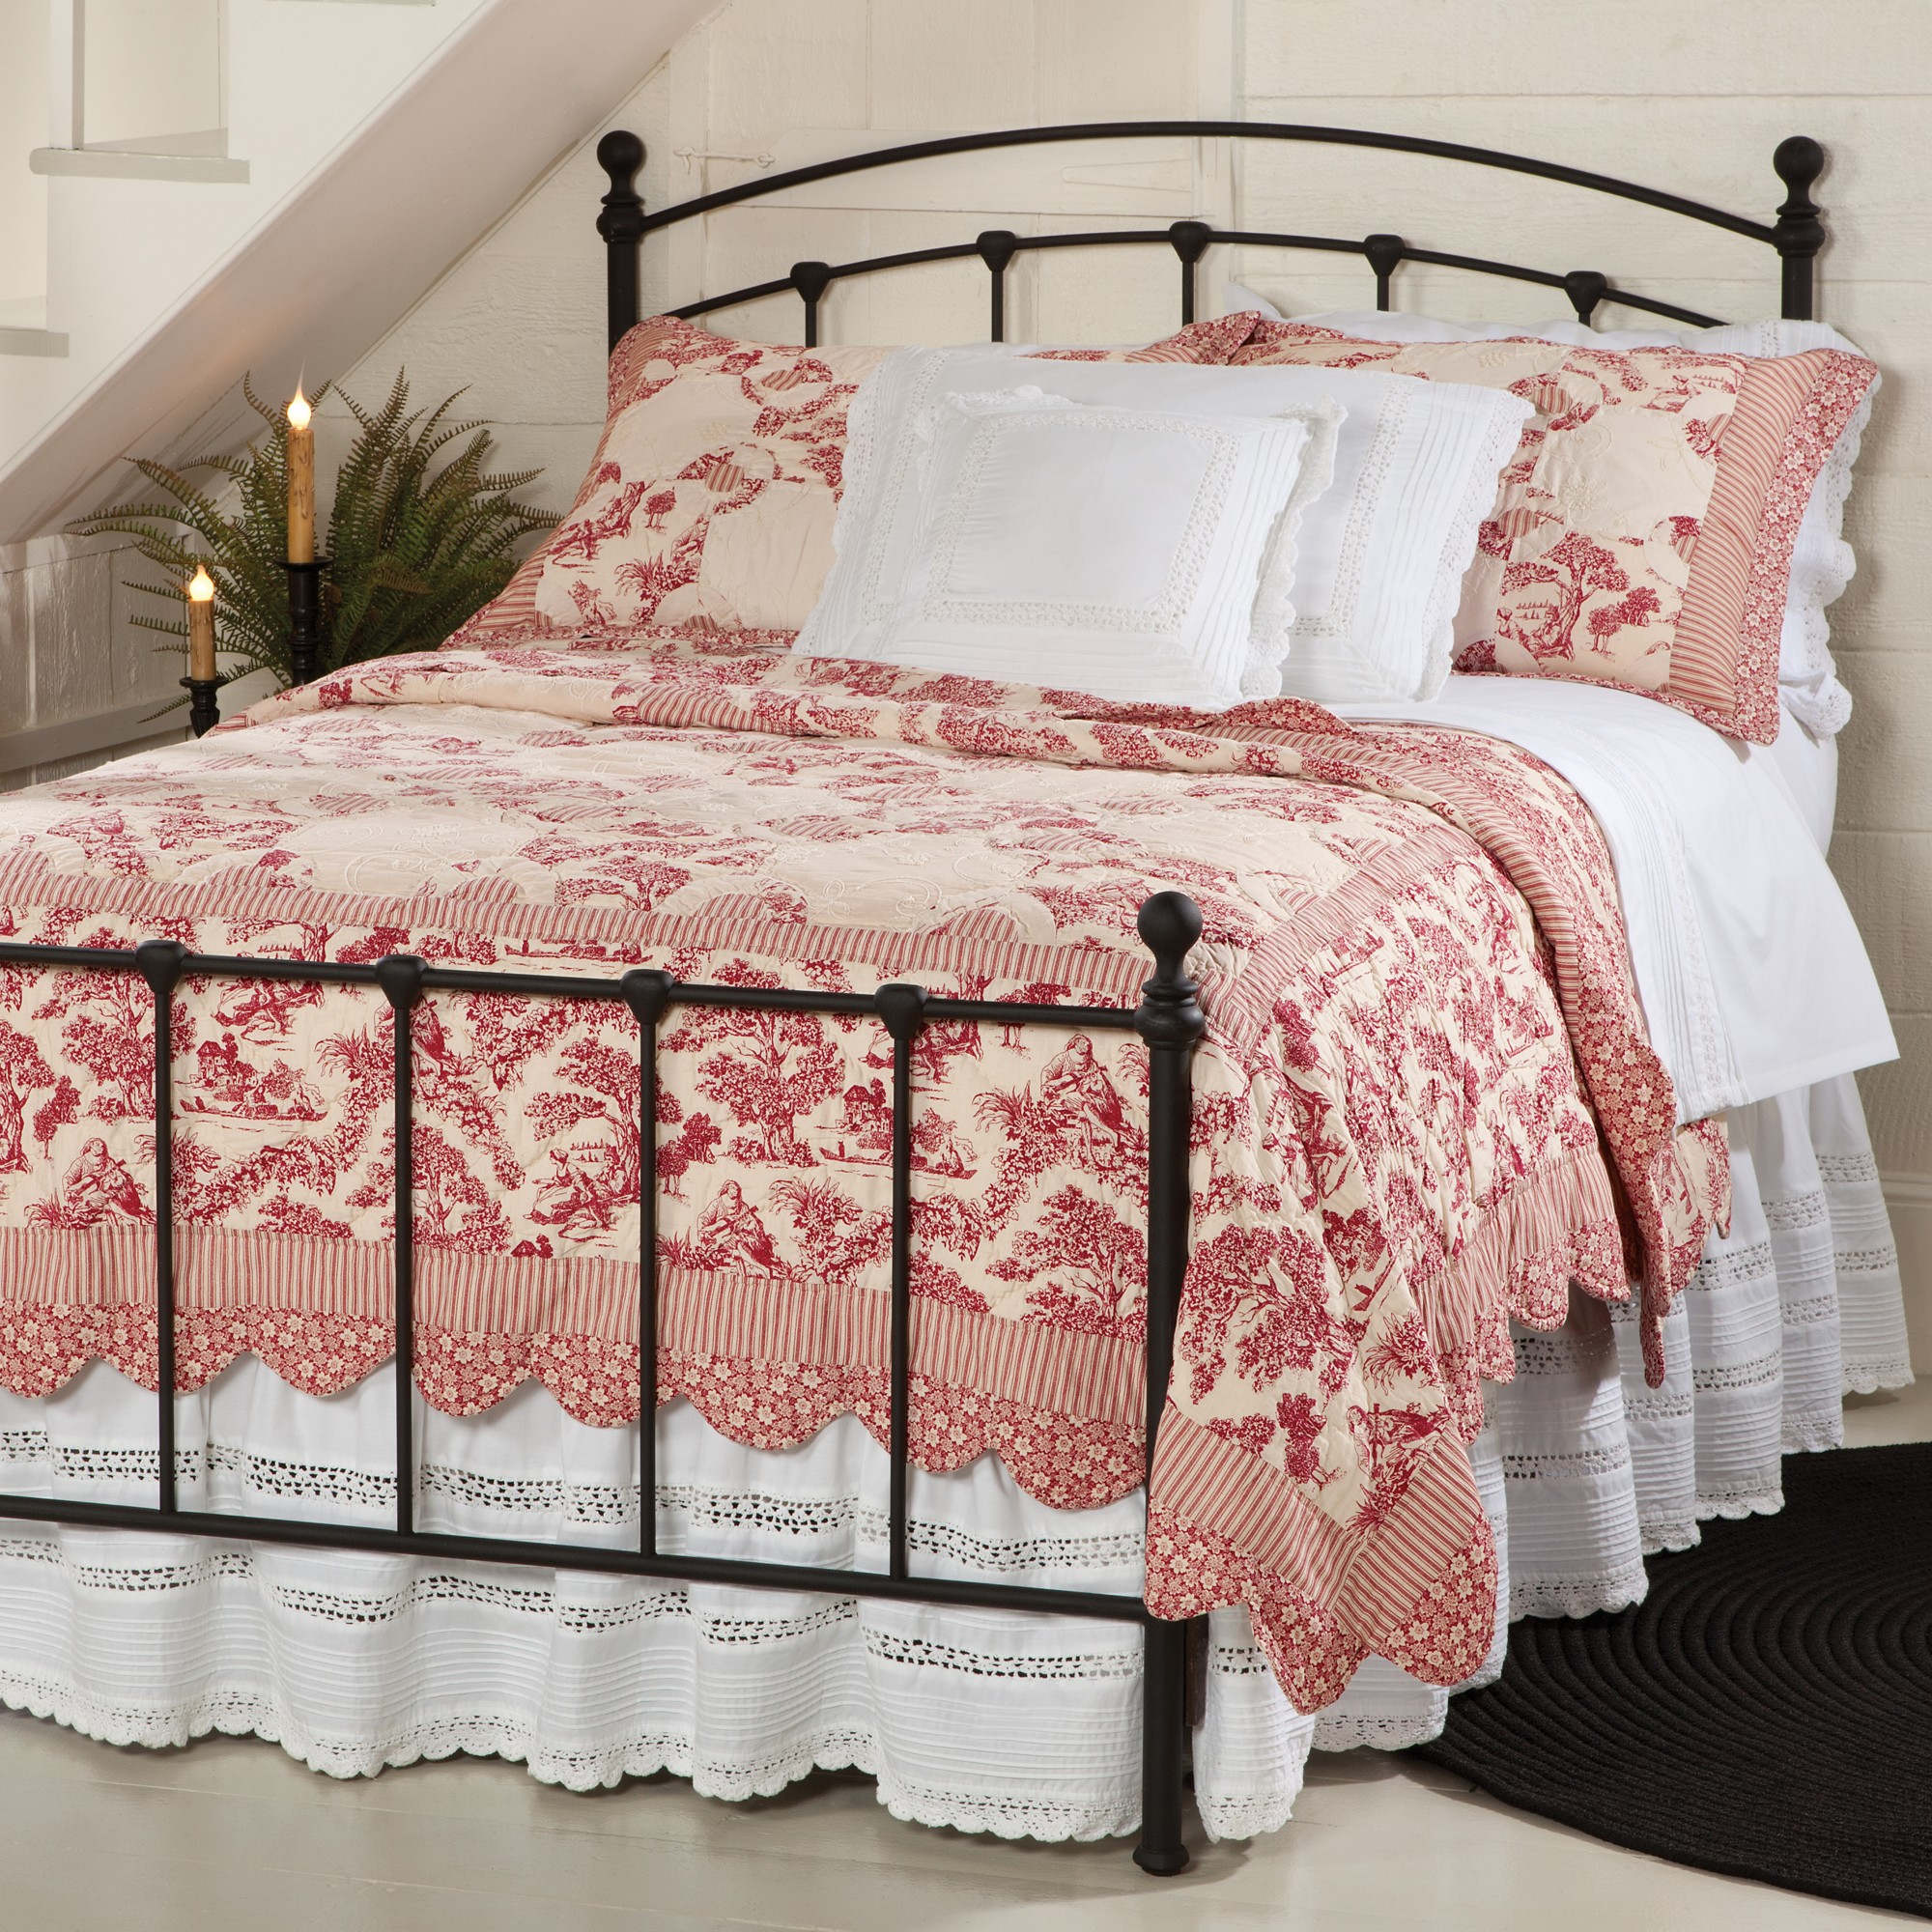 Red Toile Bedding Design HomesFeed